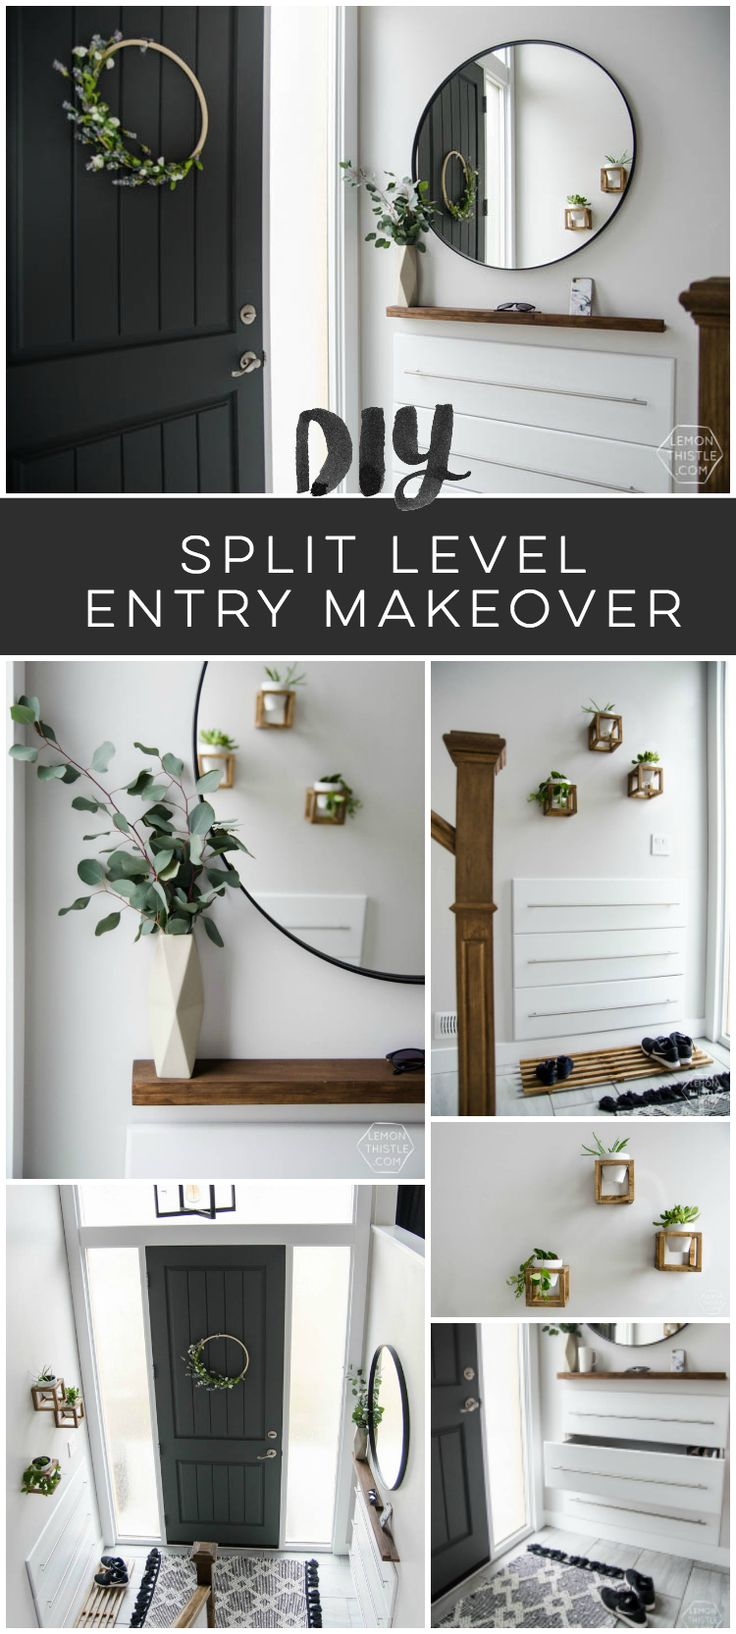 The 25 best split level entry ideas on pinterest split for Split level remodel ideas